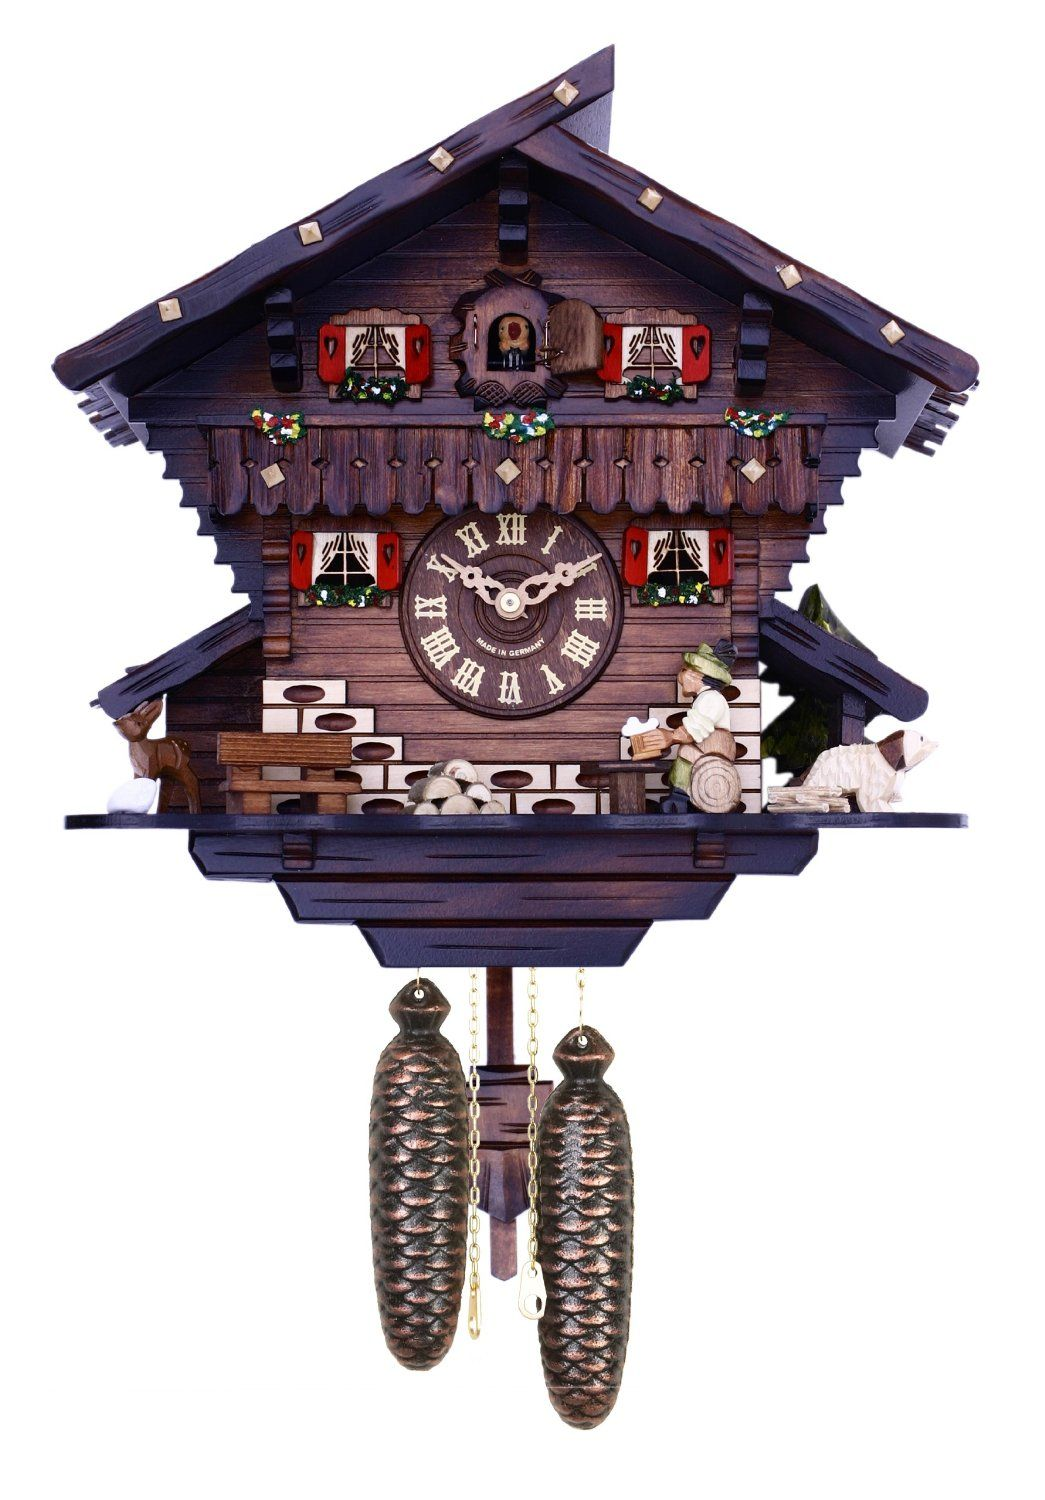 Amazon Com River City Clocks Eight Day Chalet Cuckoo Clock With Carved Deer Dog And Beer Drinker Drinking Beer 12 Inch Tall Furn Cuckoo Clock Clock Cuckoo